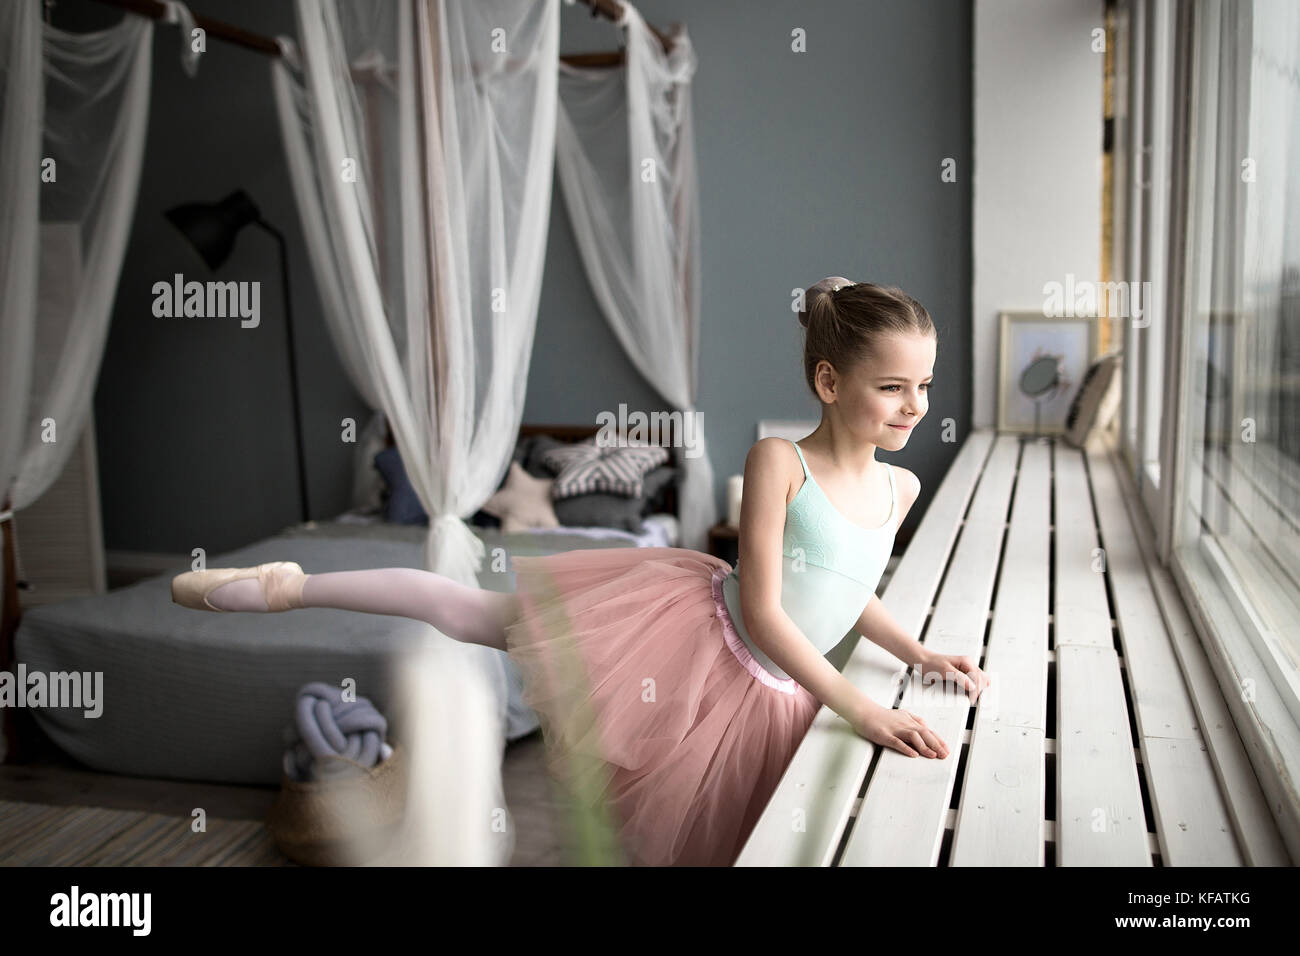 Cute little ballerina in pink ballet costume and pointe shoes is dancing in the room. Child girl is studying ballet. - Stock Image